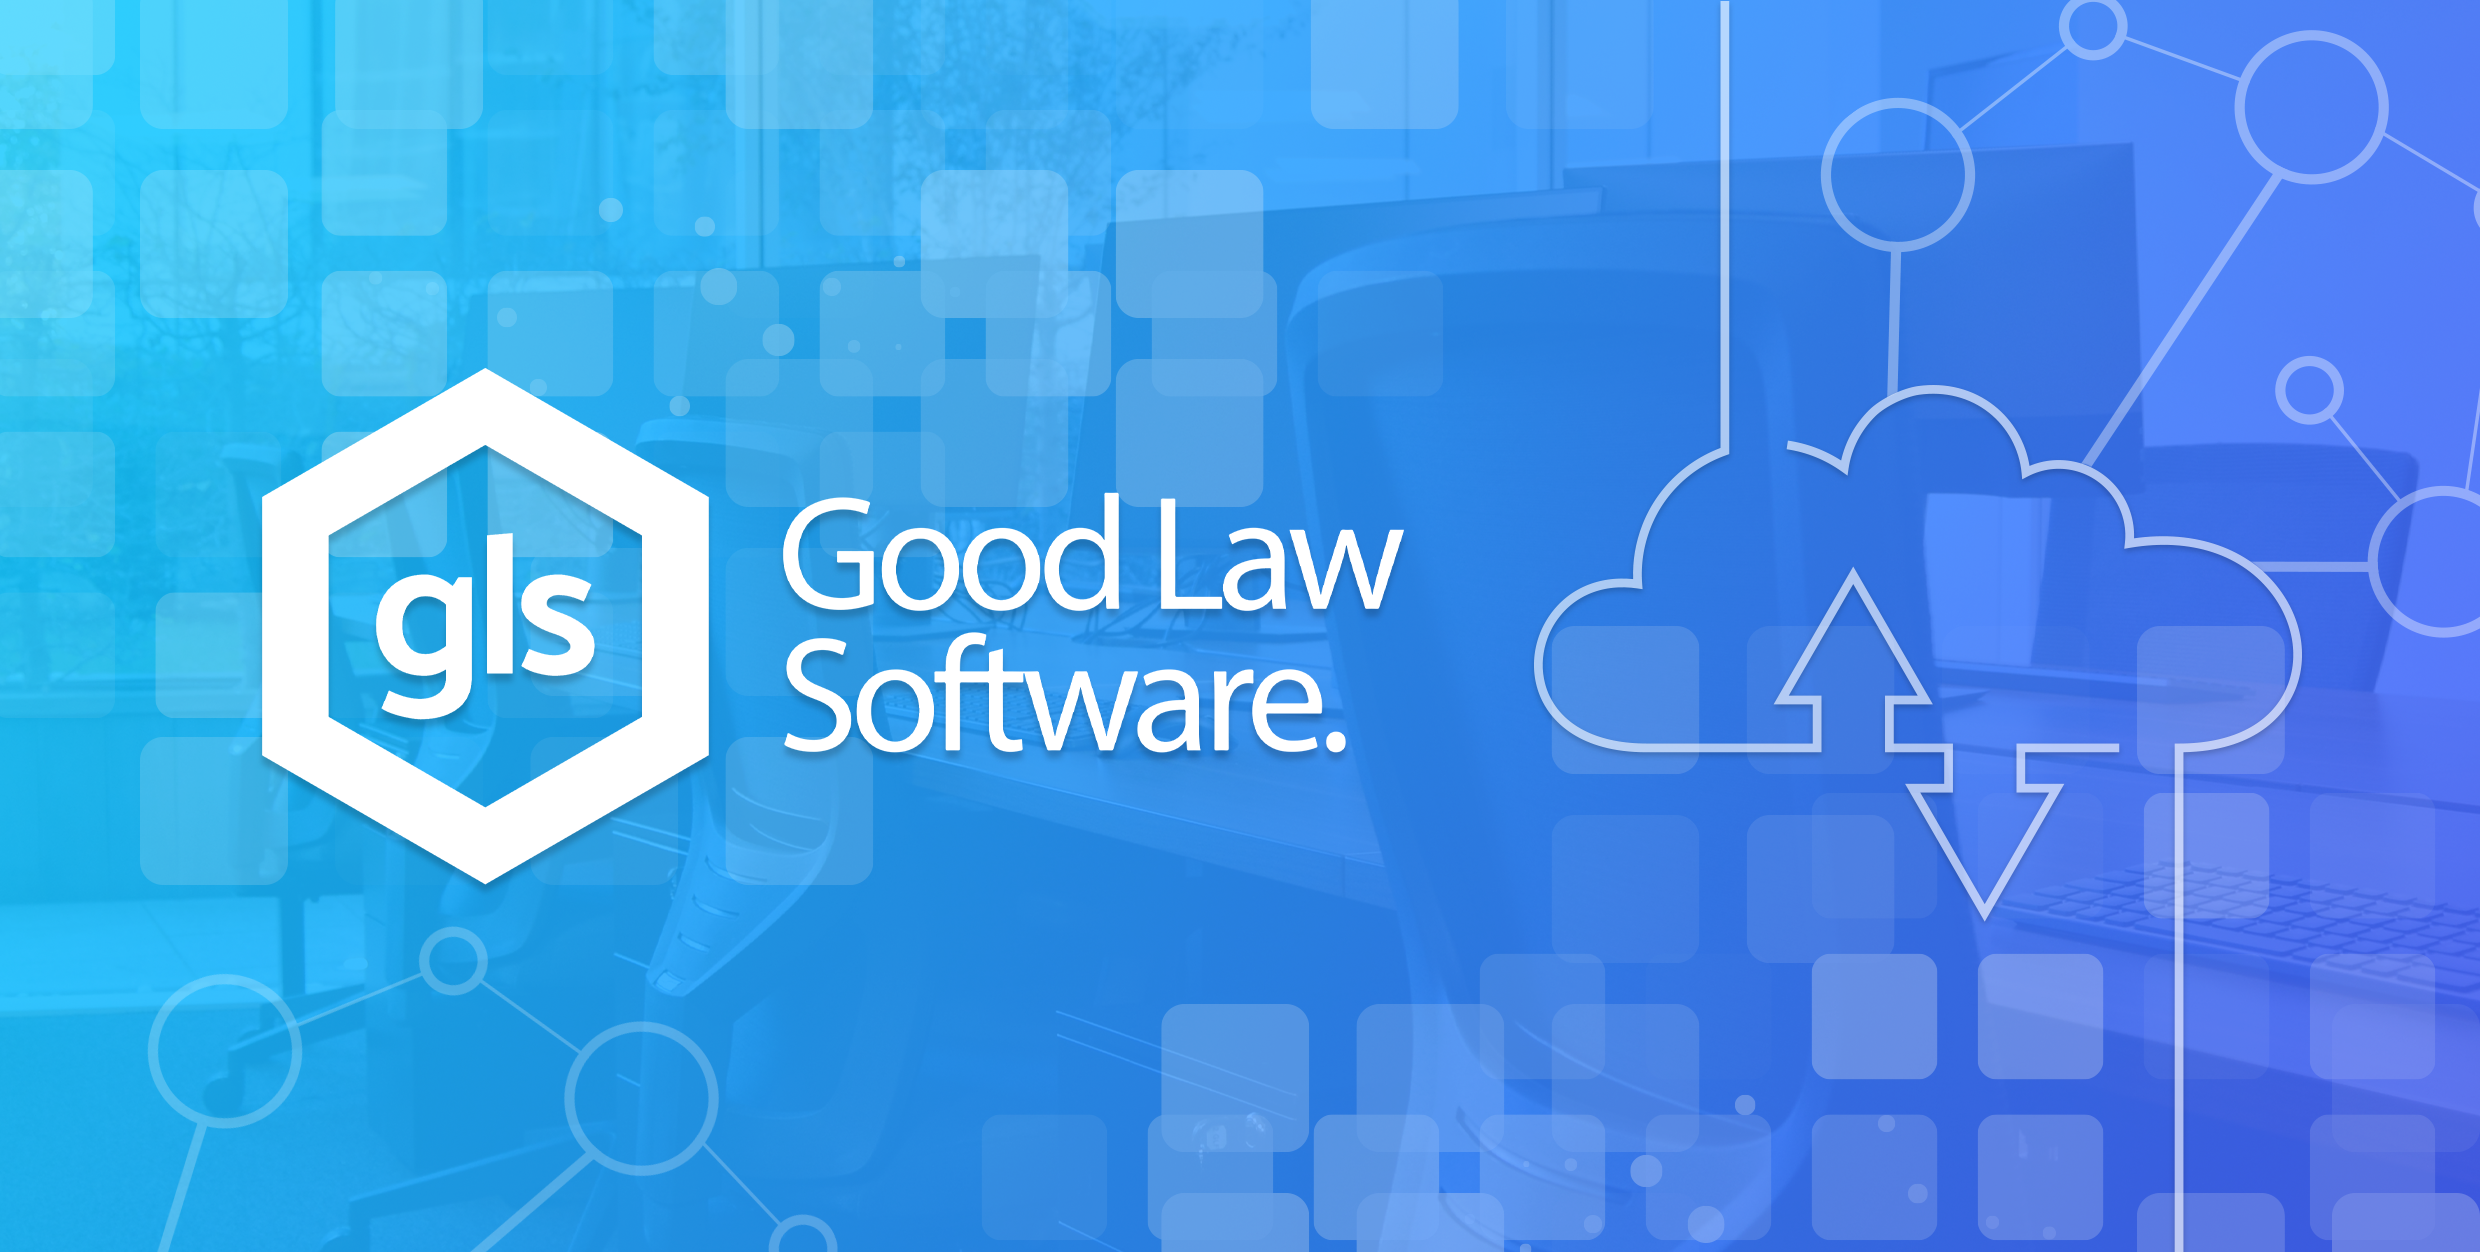 case management software, practice management software, legal accounting software, legaltech, technology for lawyers, case management, immigration, london, united kingdom